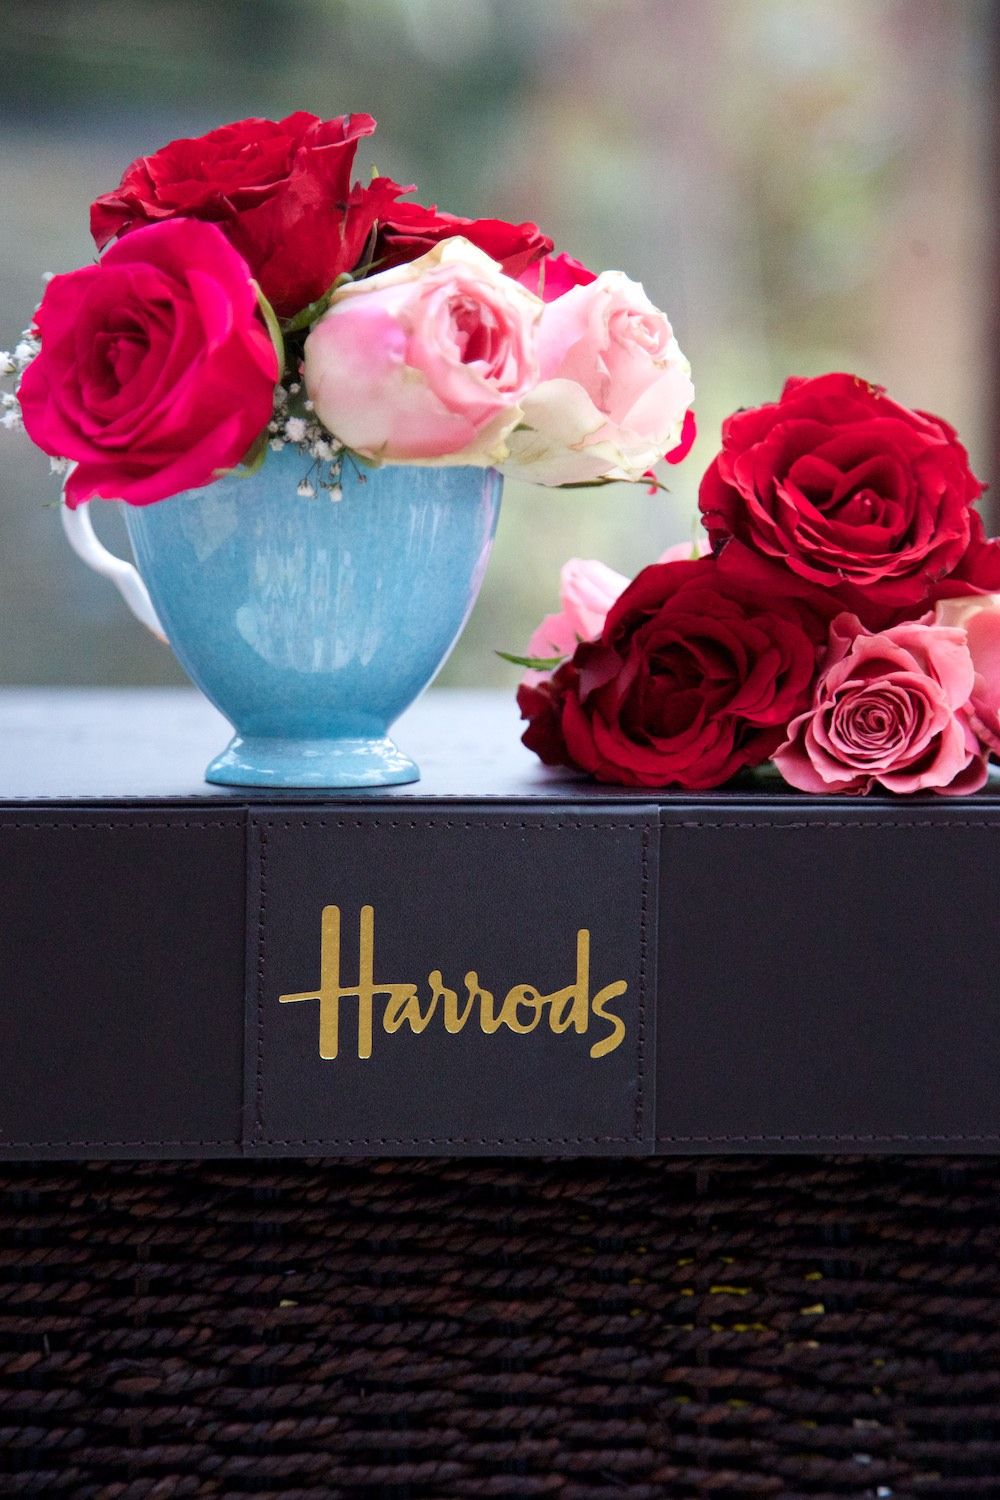 Harrods Hampers